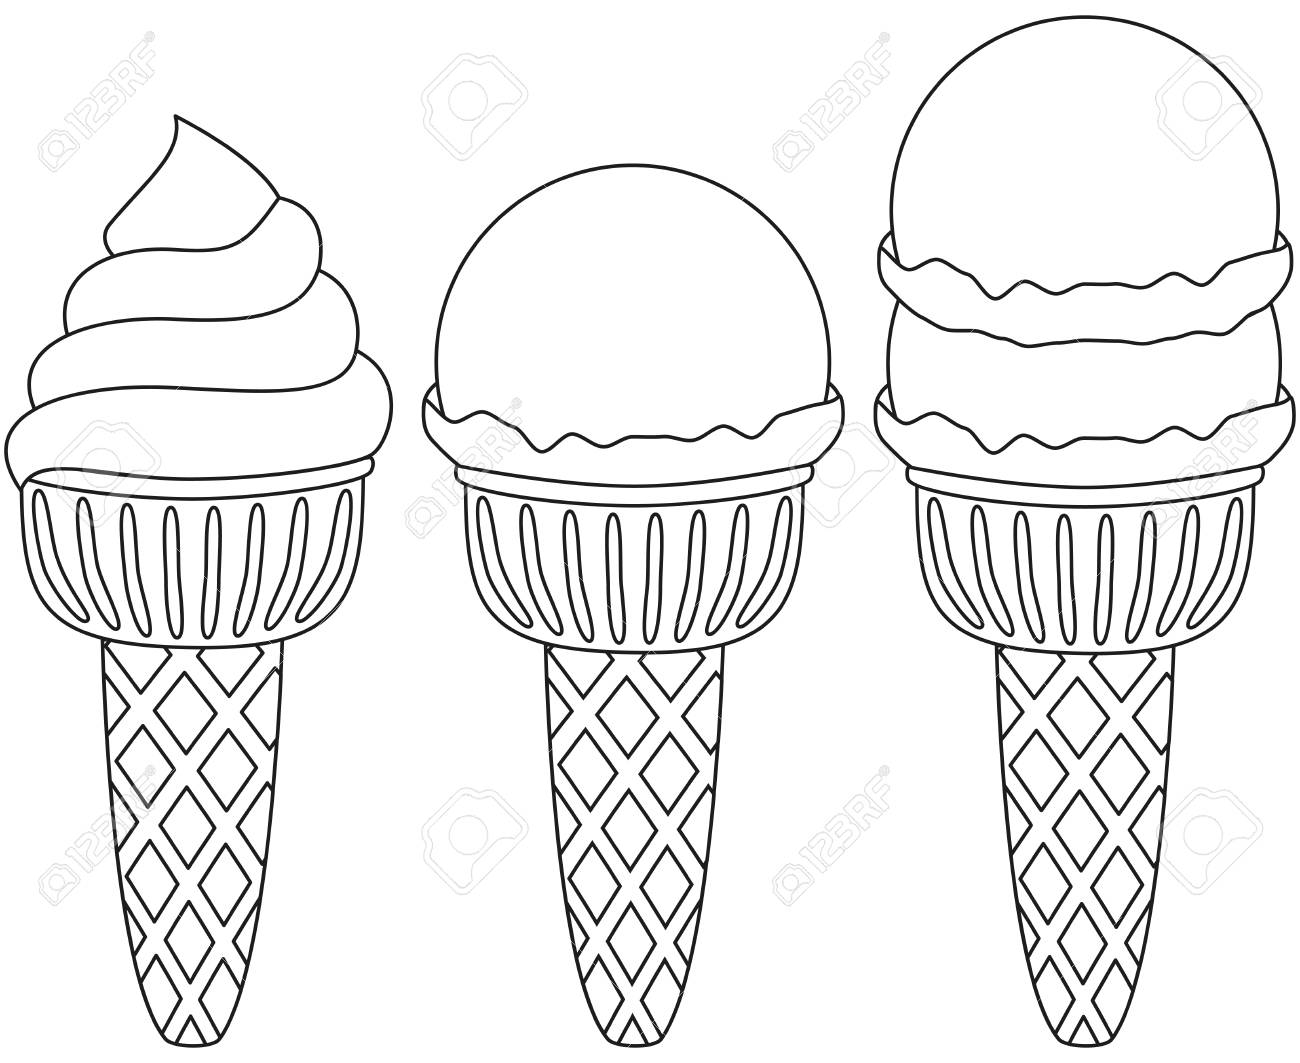 Black and white ice cream cone icon set coloring book page for adults and kids